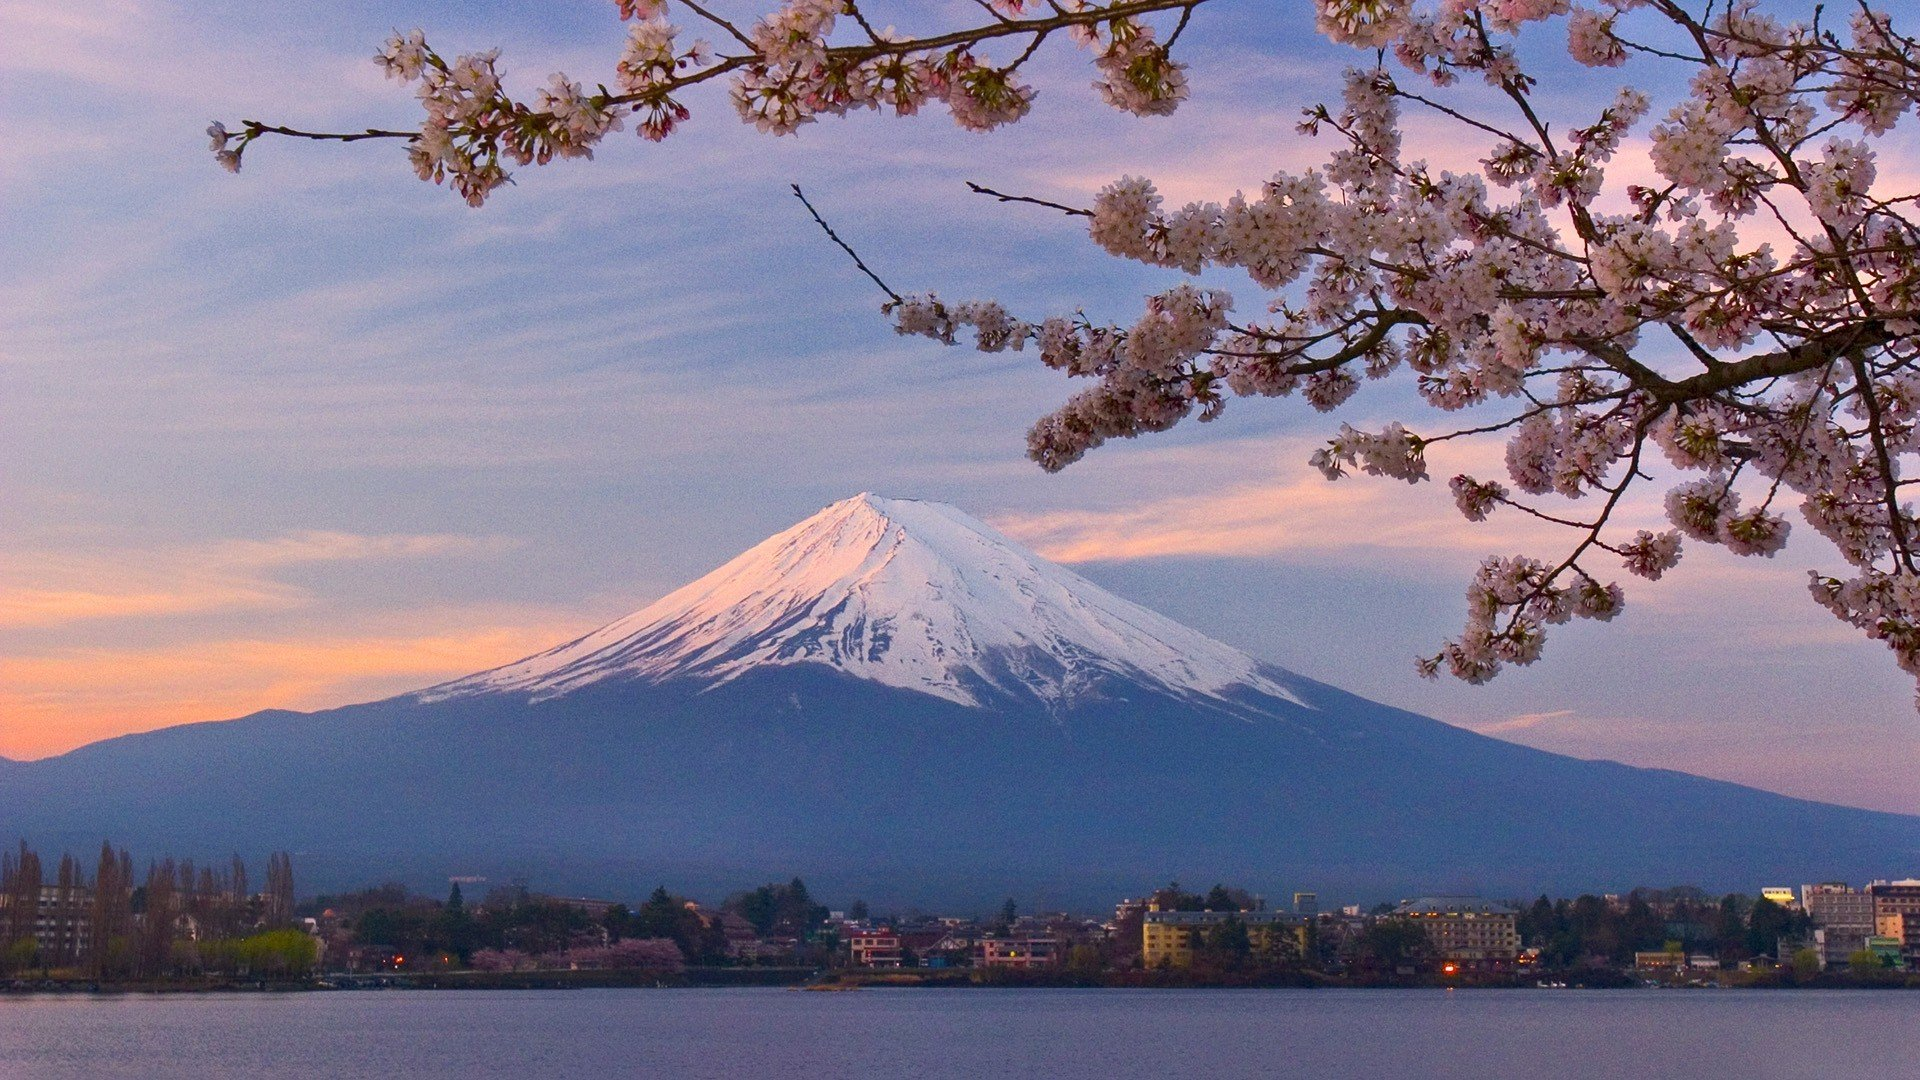 Free Download Mount Fuji Wallpaper 15 1920 X 1080 Stmednet